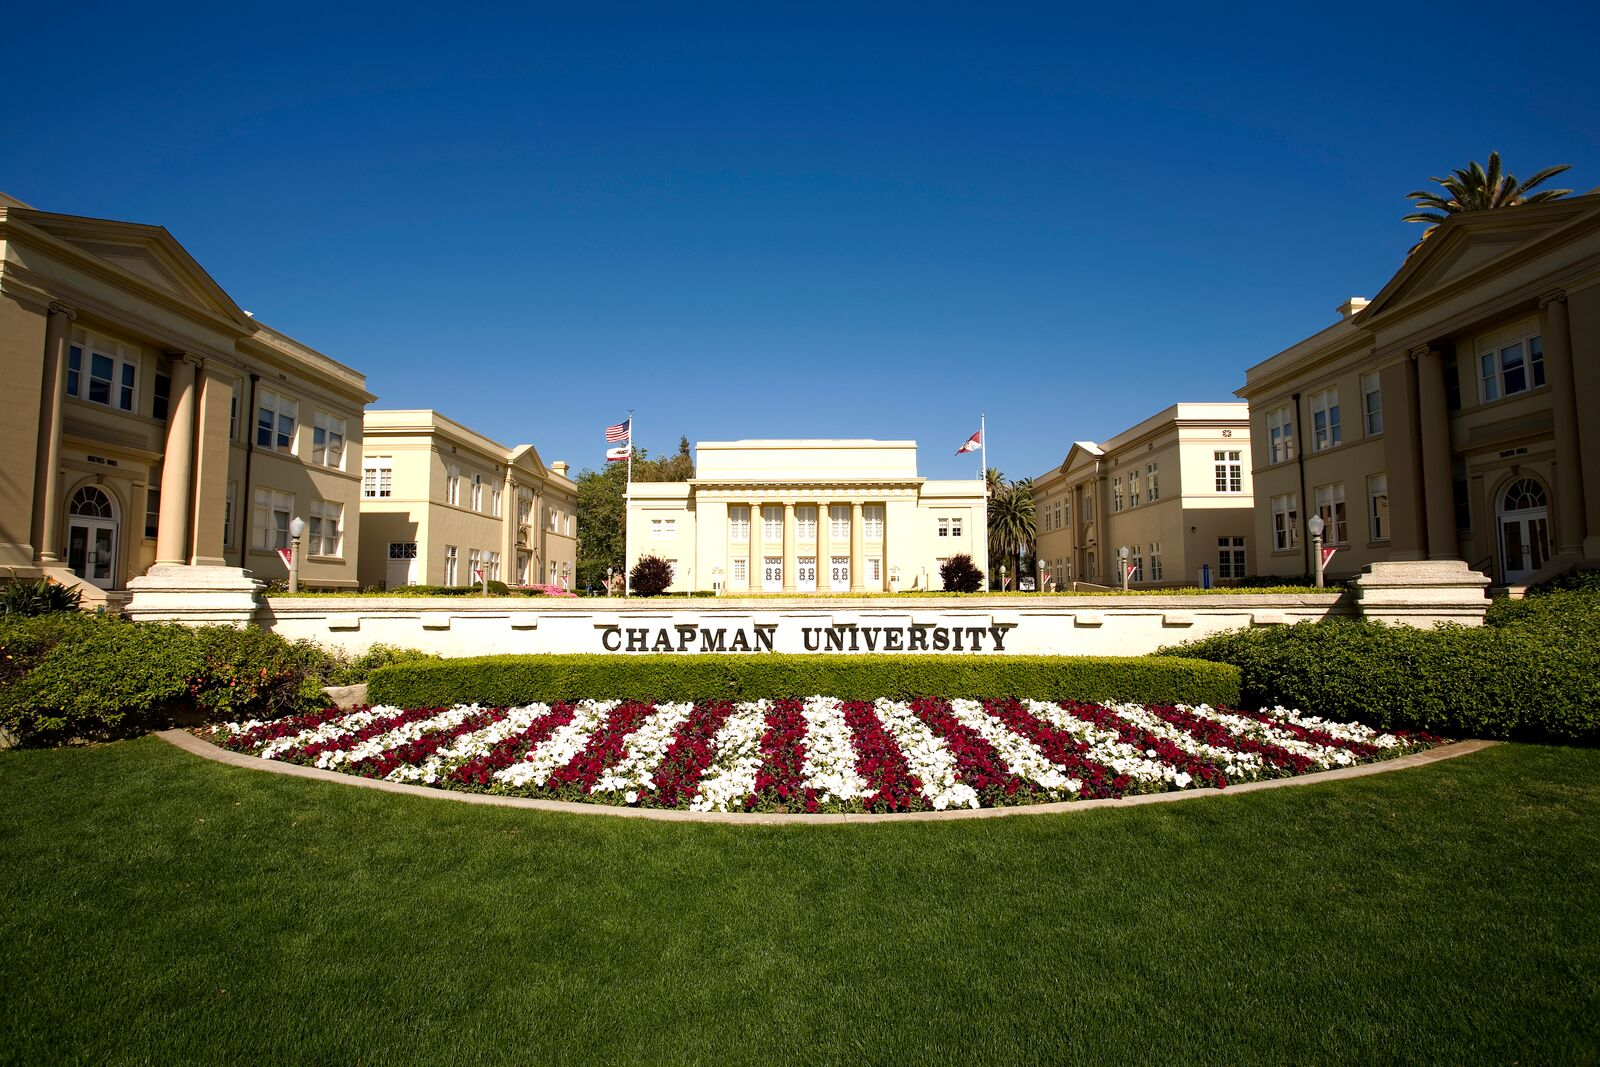 green campus with white and red flowers with Chapman University sign